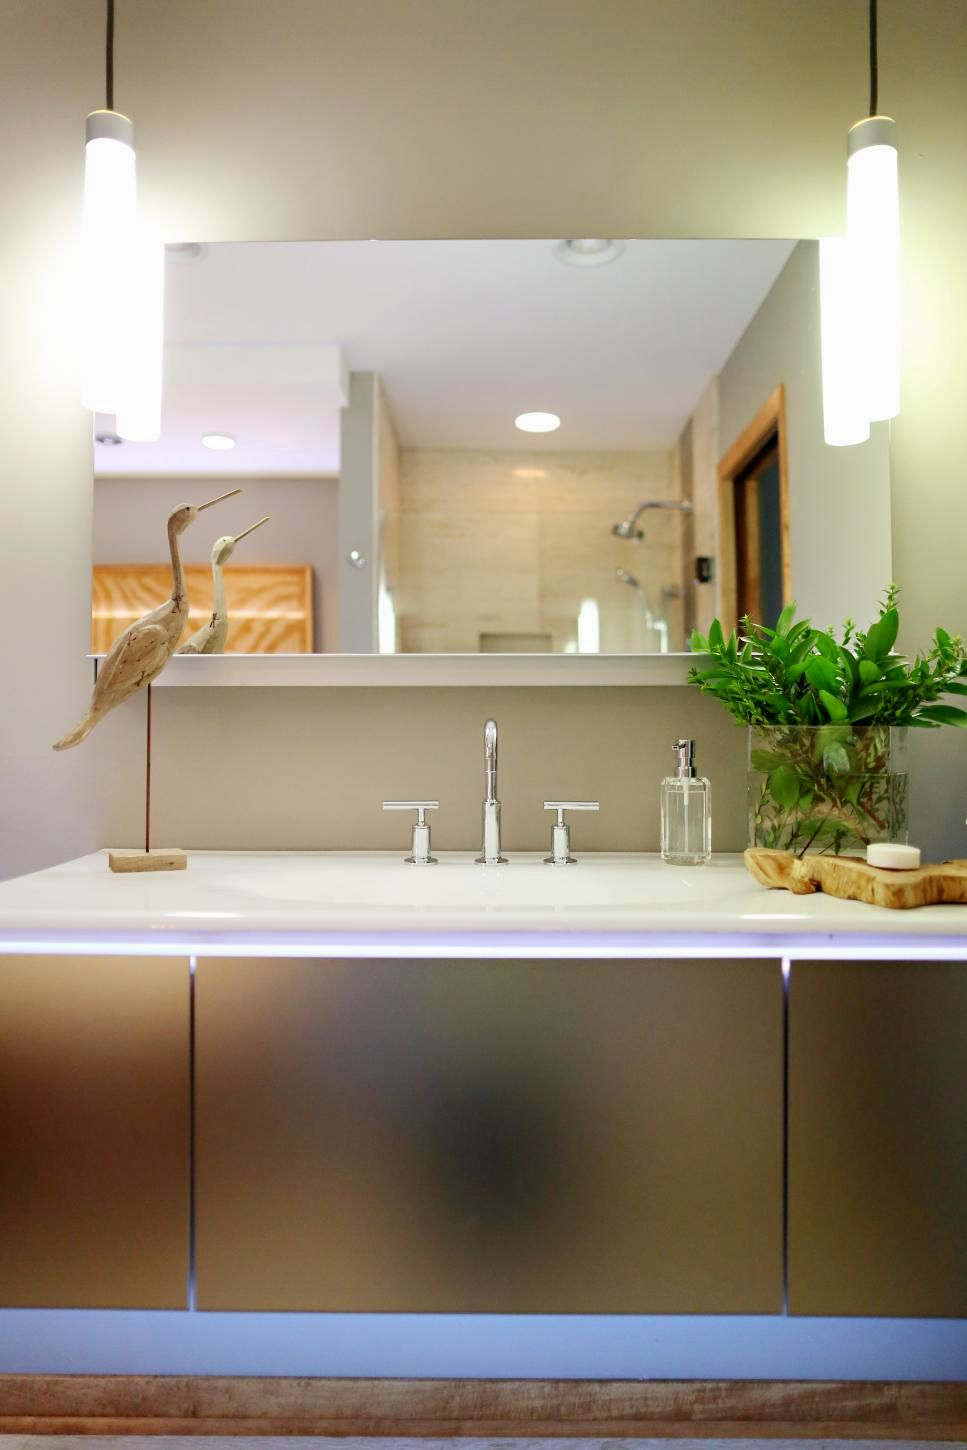 awesome mirror in the bathroom design-Lovely Mirror In the Bathroom Model